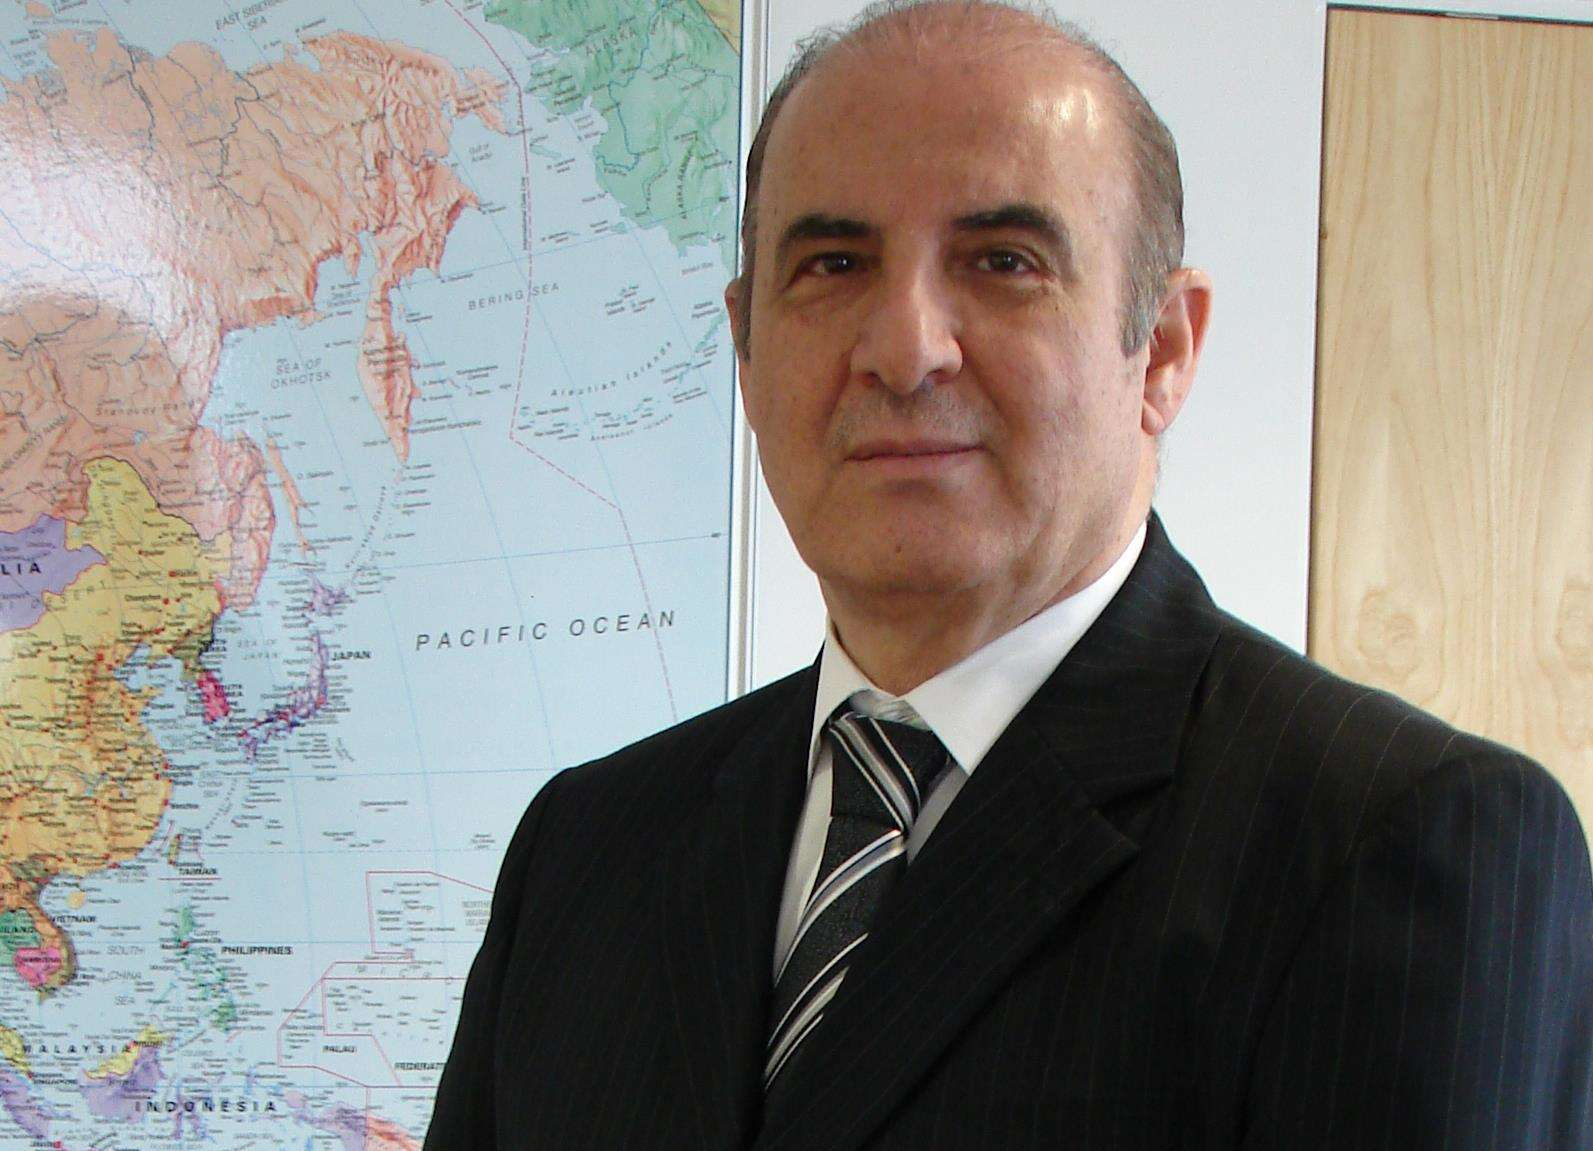 Lydd Airport executive manager Hani Mutlaq